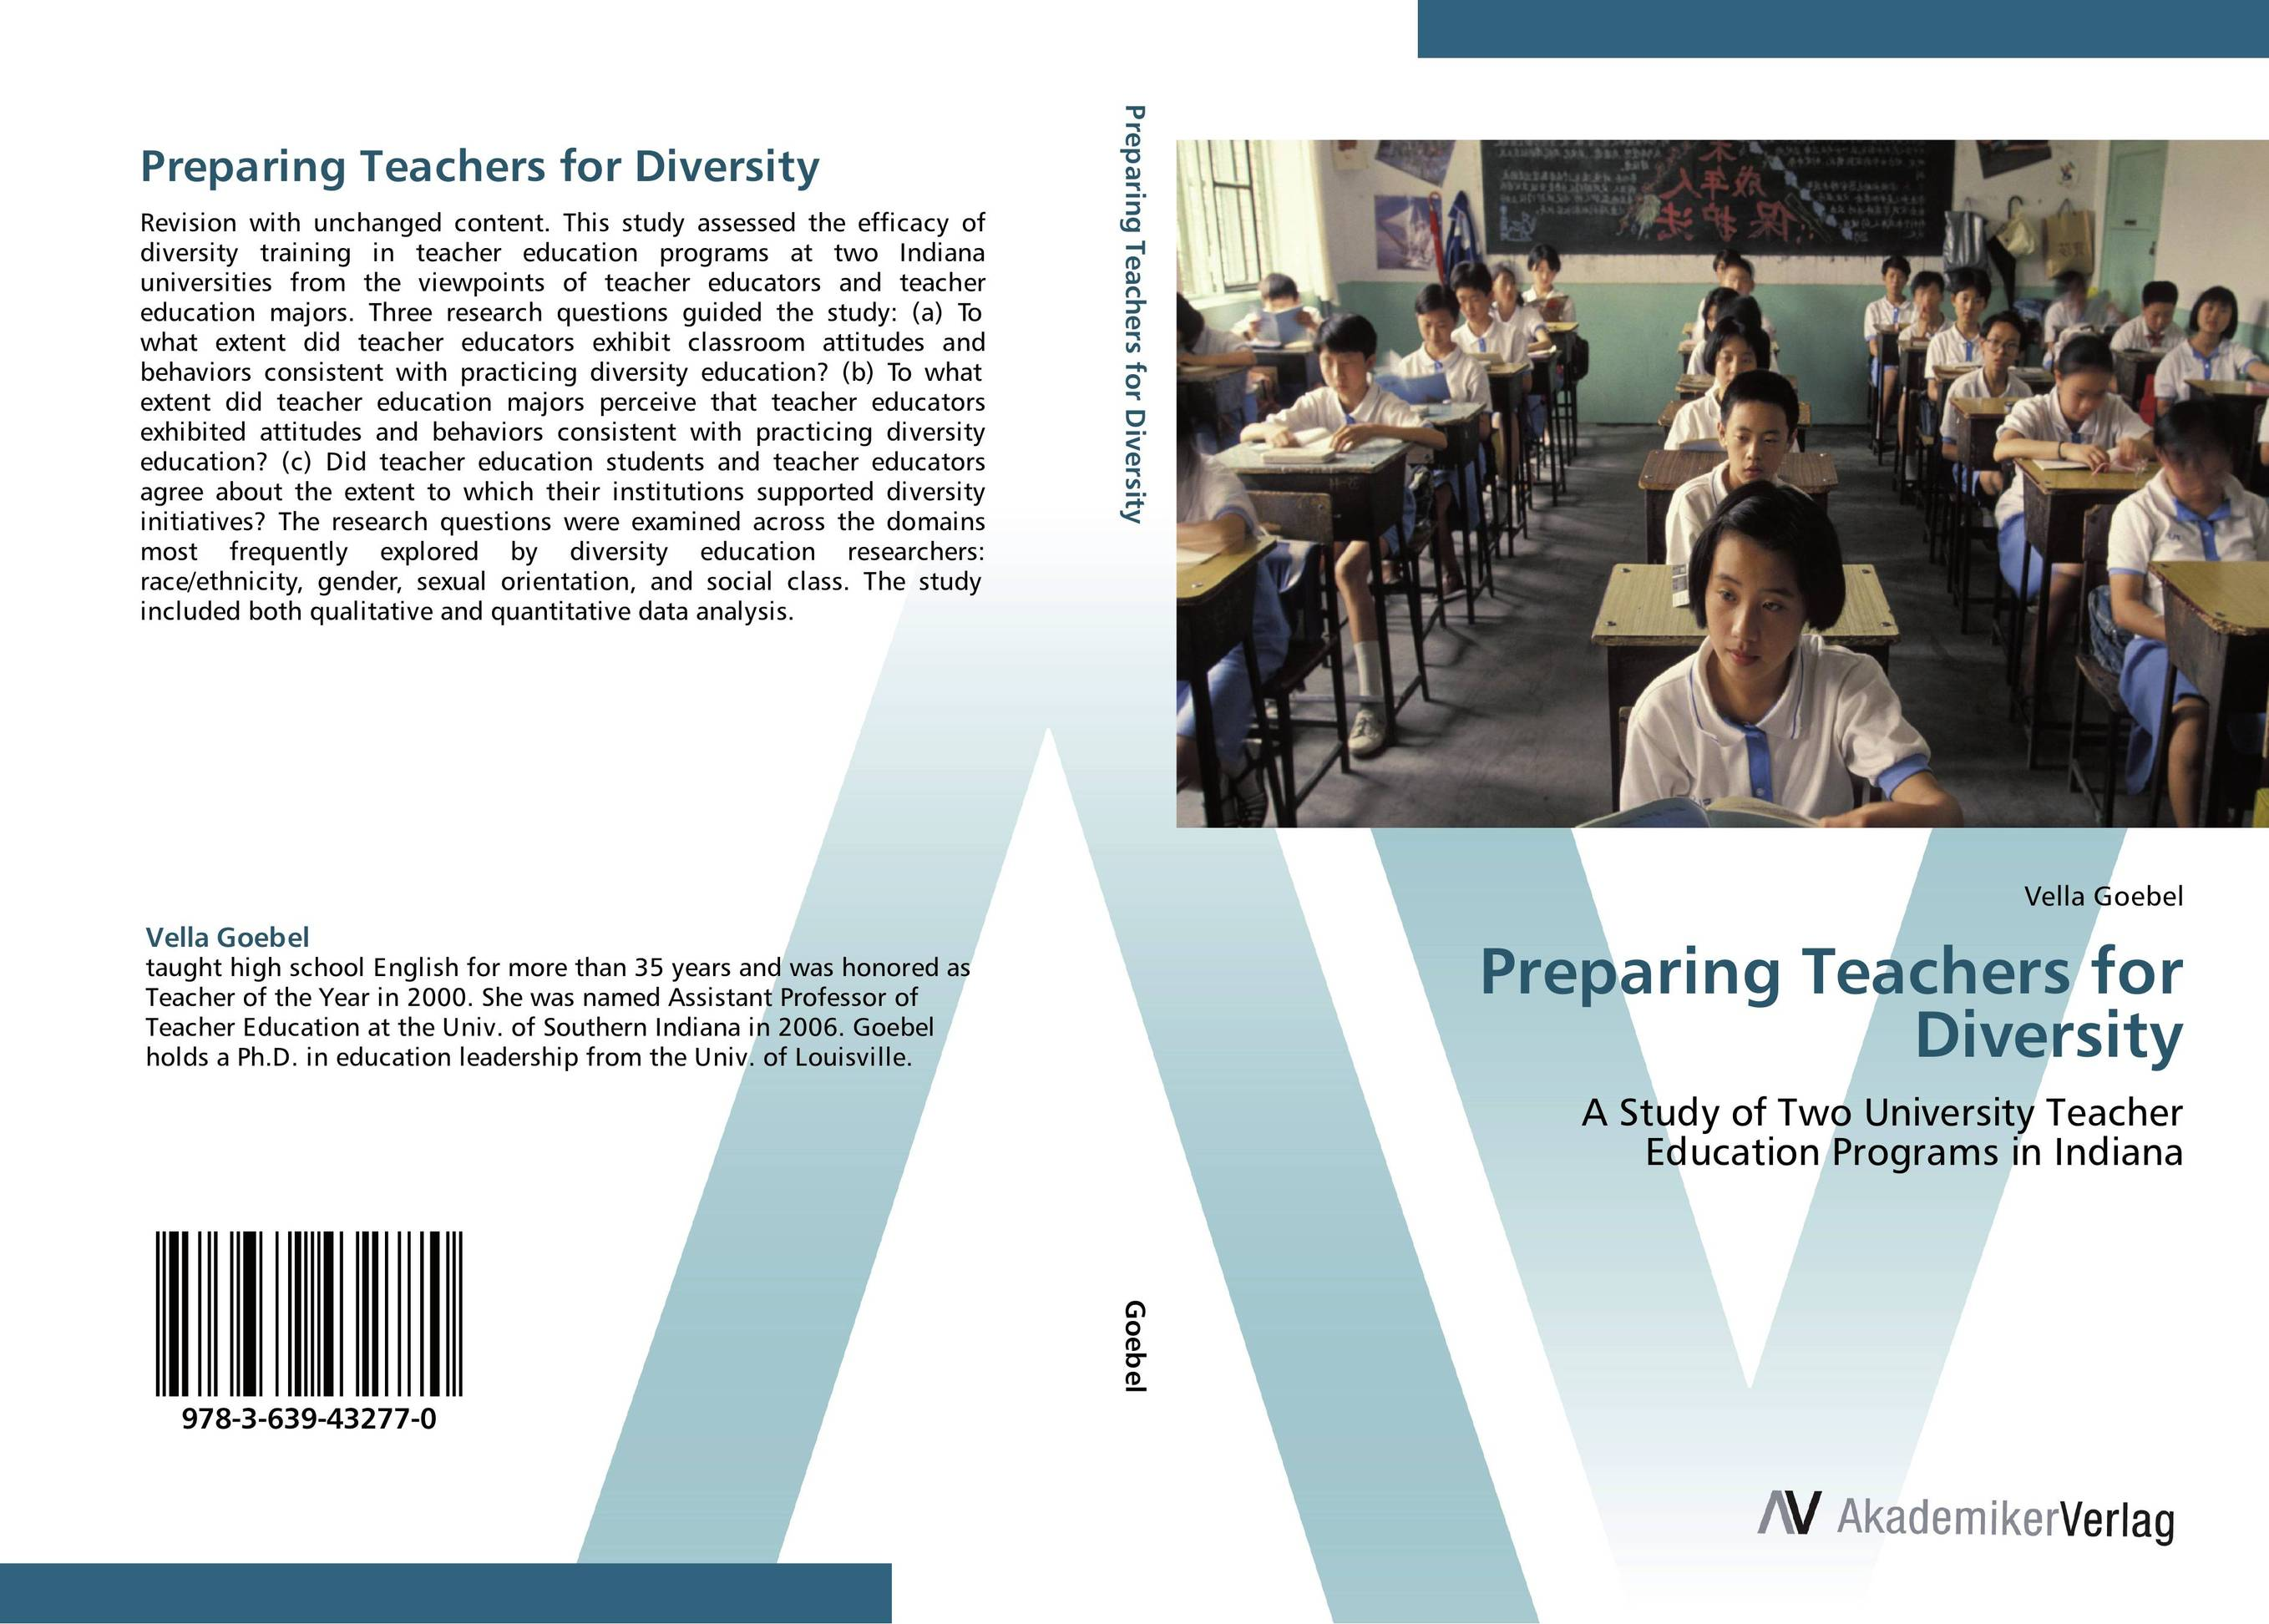 Preparing Teachers for Diversity